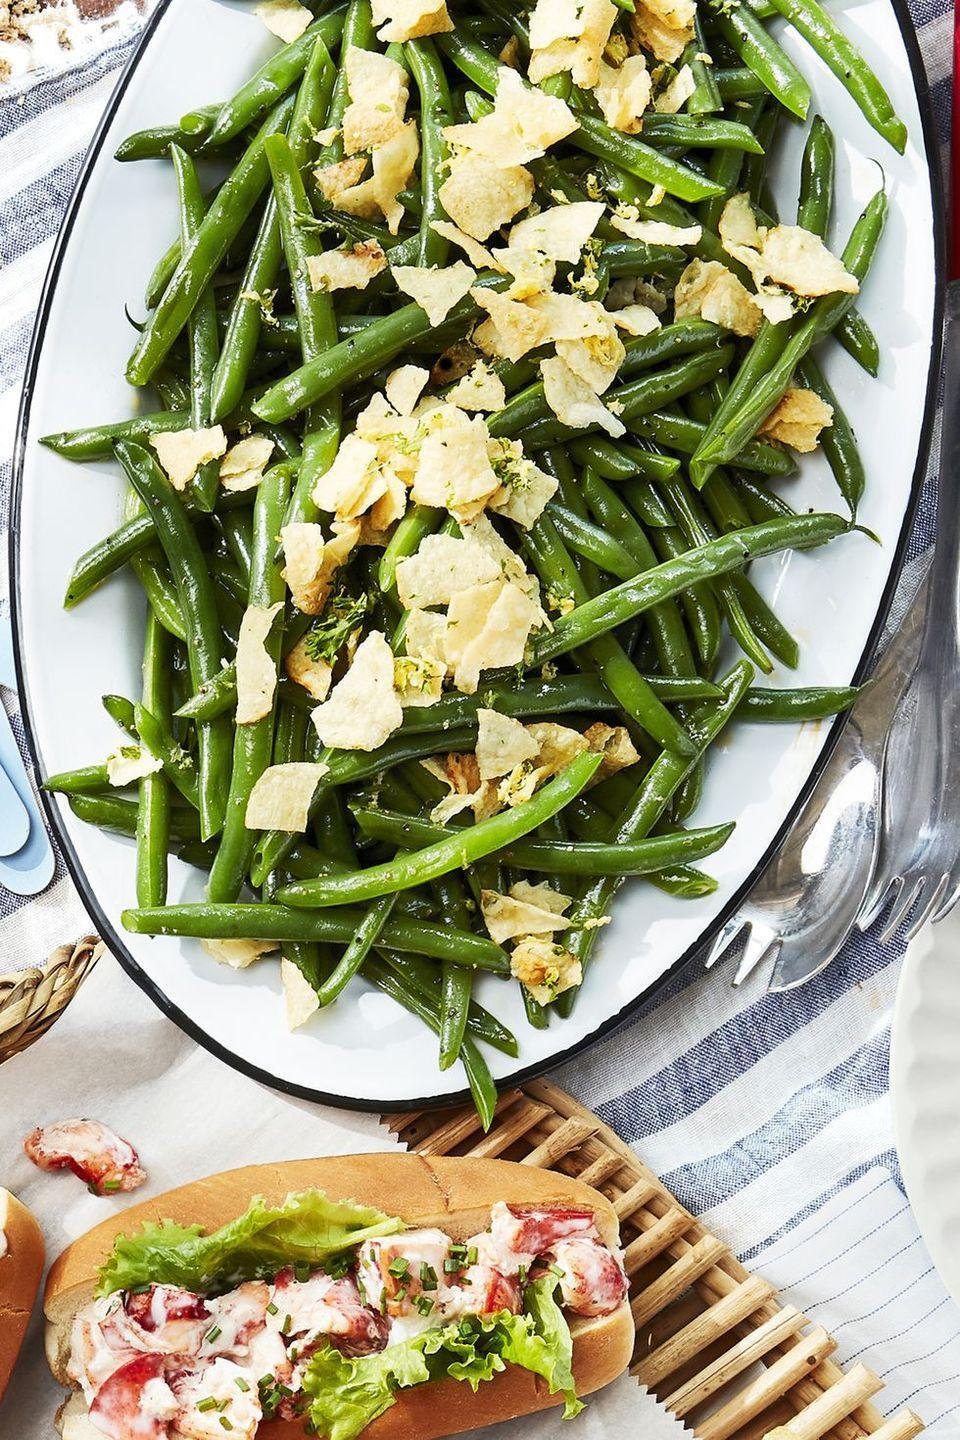 """<p>Blanched green beans get topped with a crumbled chip, parsley, and lemon zest topping.<br></p><p><strong><a href=""""https://www.countryliving.com/food-drinks/a27547118/green-beans-and-crushed-salt-and-vinegar-chips-recipe/"""" rel=""""nofollow noopener"""" target=""""_blank"""" data-ylk=""""slk:Get the recipe"""" class=""""link rapid-noclick-resp"""">Get the recipe</a>.</strong></p>"""